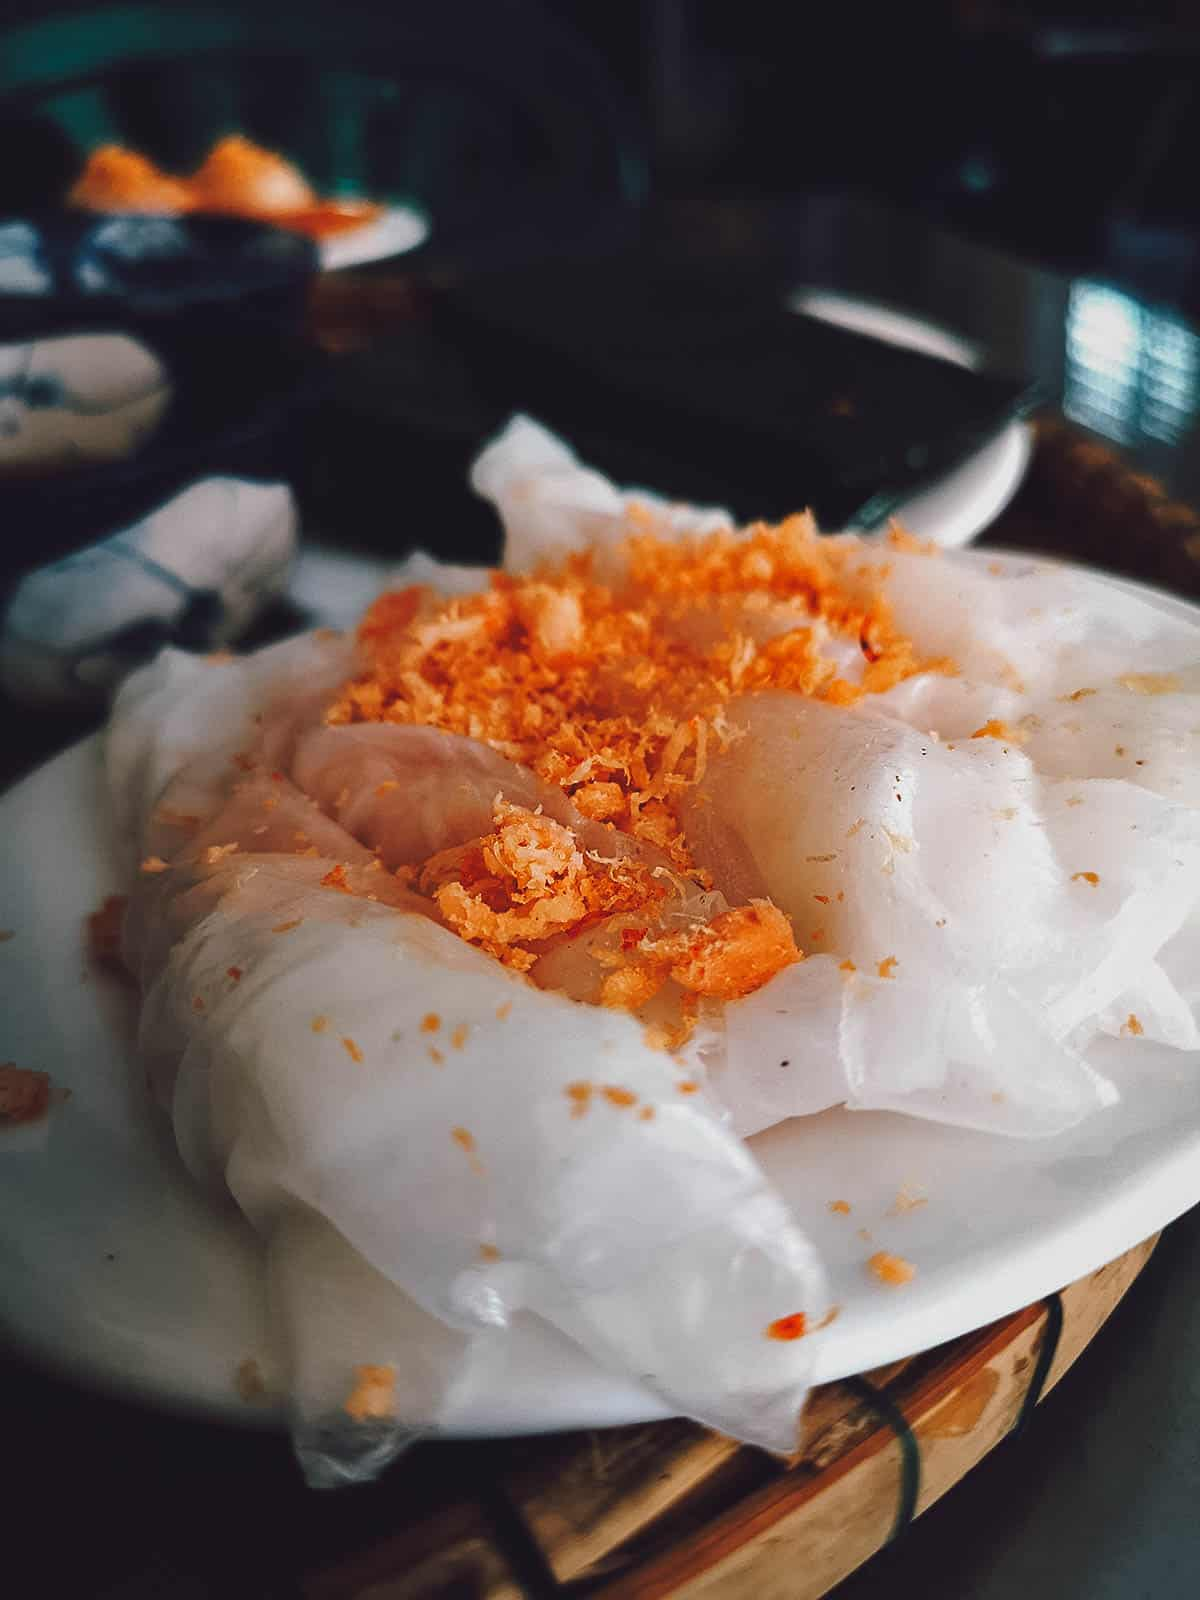 Banh uot at Hang Me Me in Vietnam